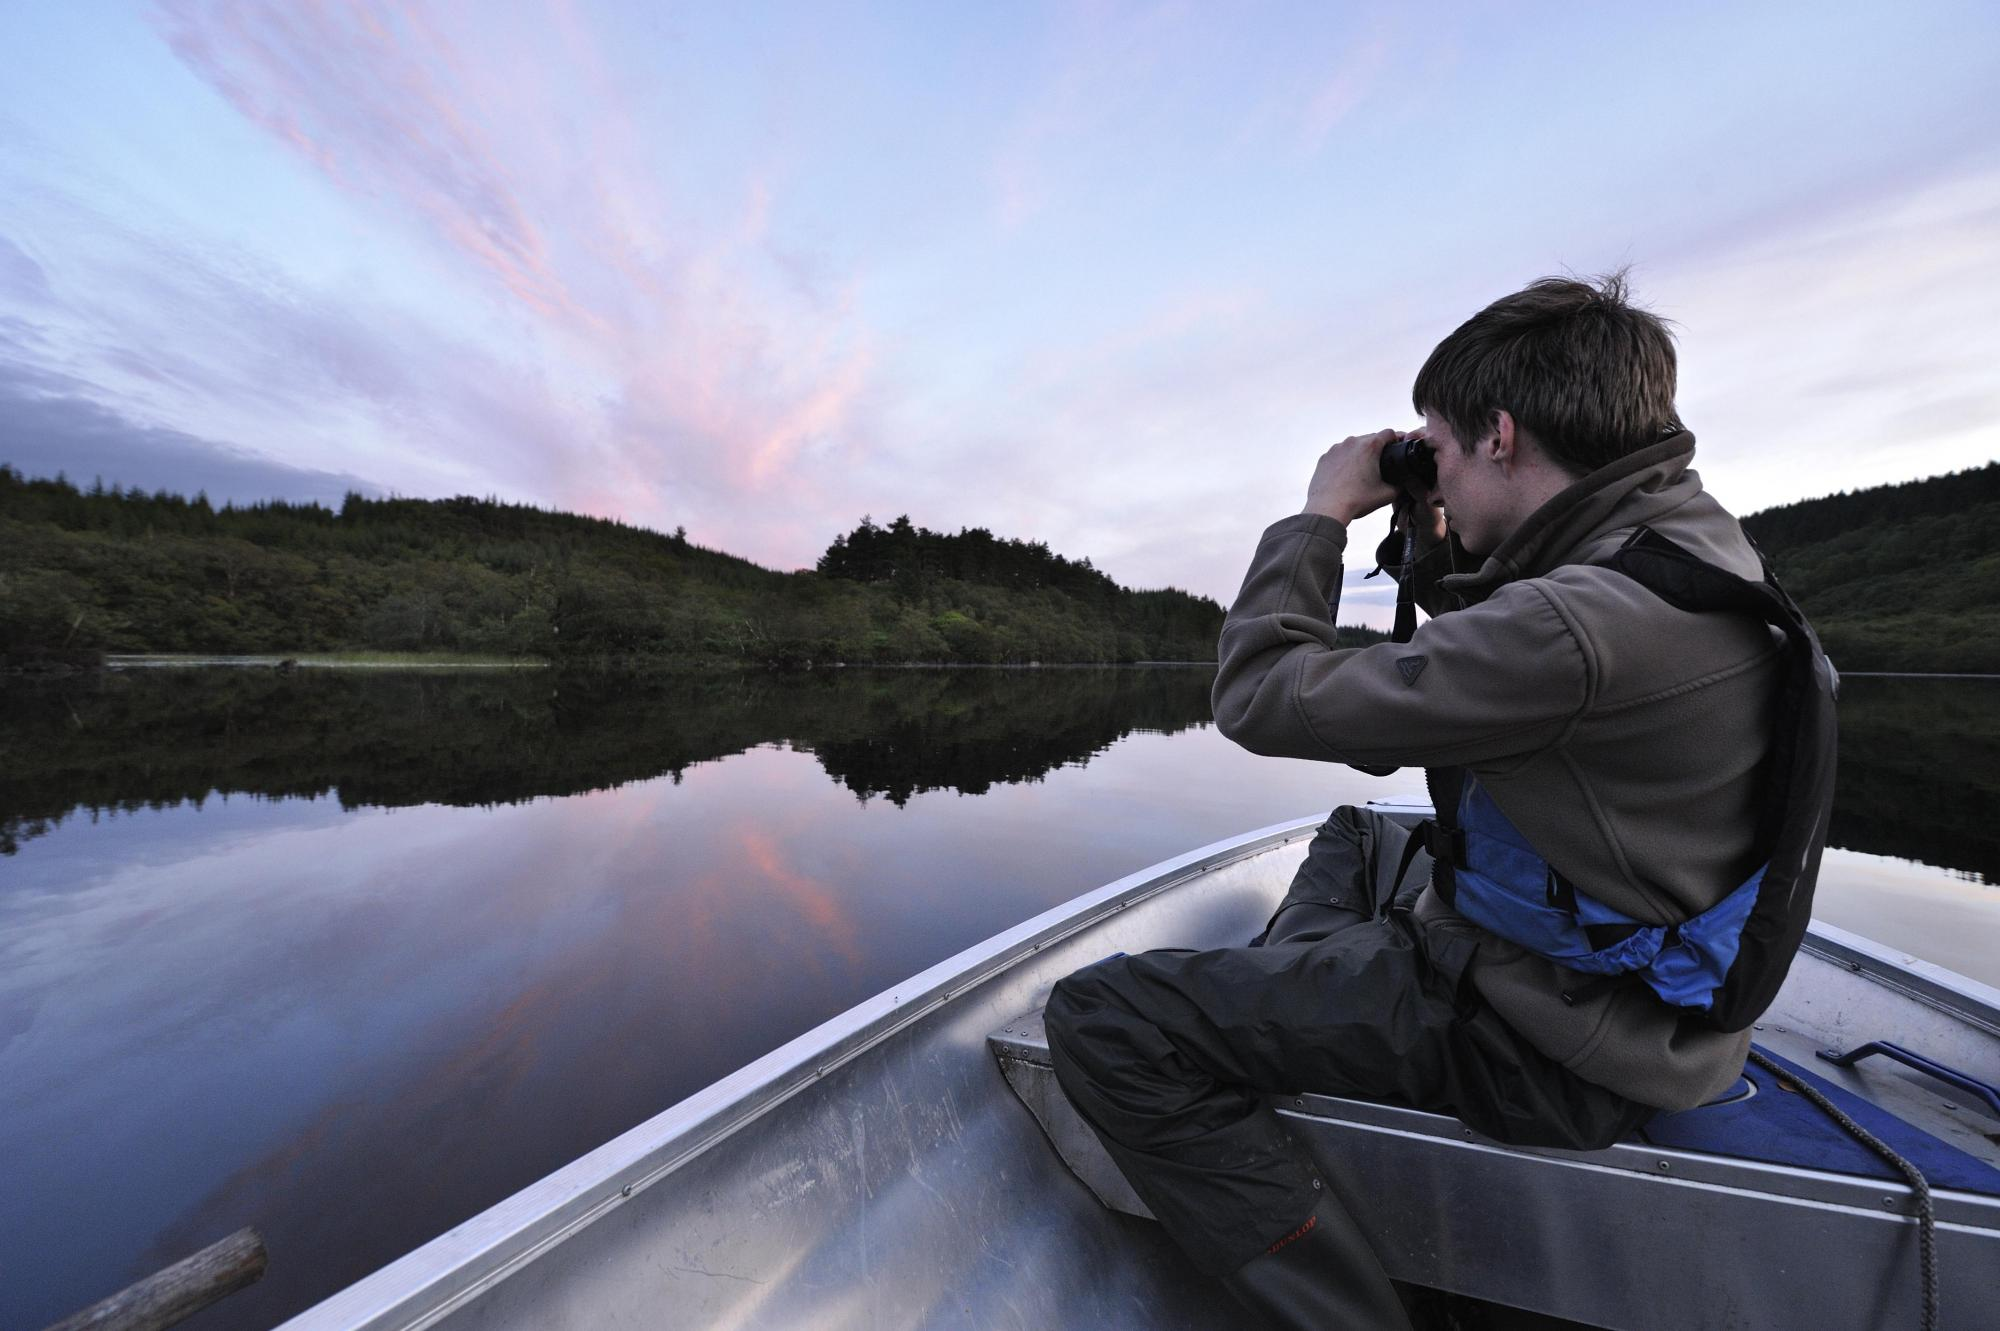 SBT volunteer and dutch zoology student scanning for beavers on Loch Linne ©Lorne Gill/SNH. For information on reproduction rights contact the Scottish Natural Heritage Image Library on Tel. 01738 444177 or www.nature.scot